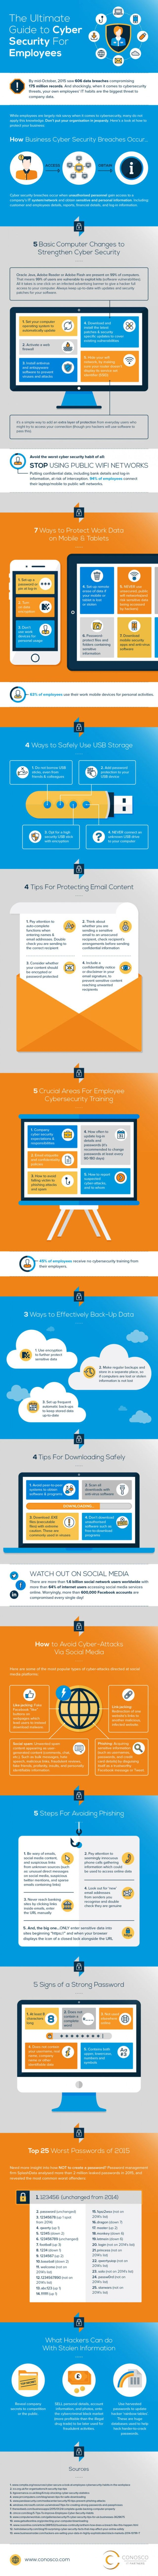 The Ultimate Guide to Cyber Security For Employees #Infographic